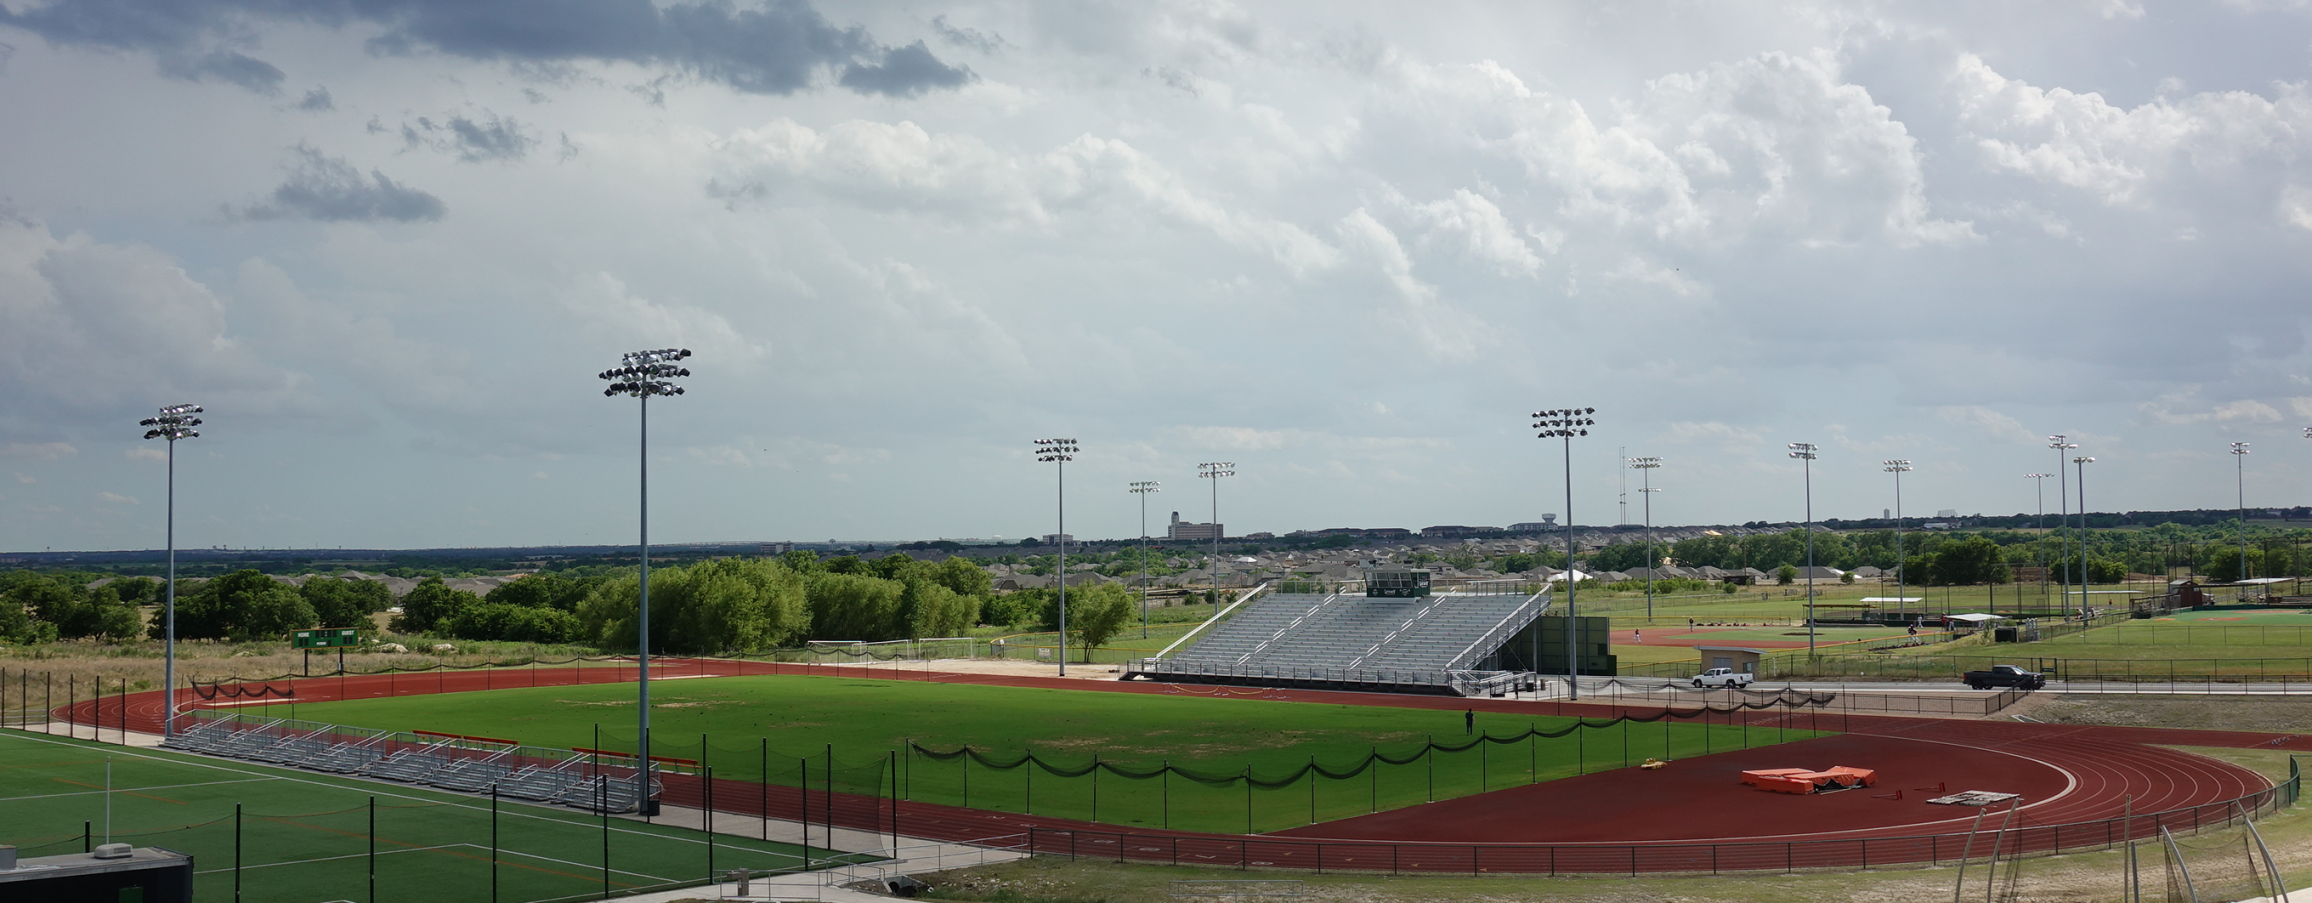 photo of soccer field and running track